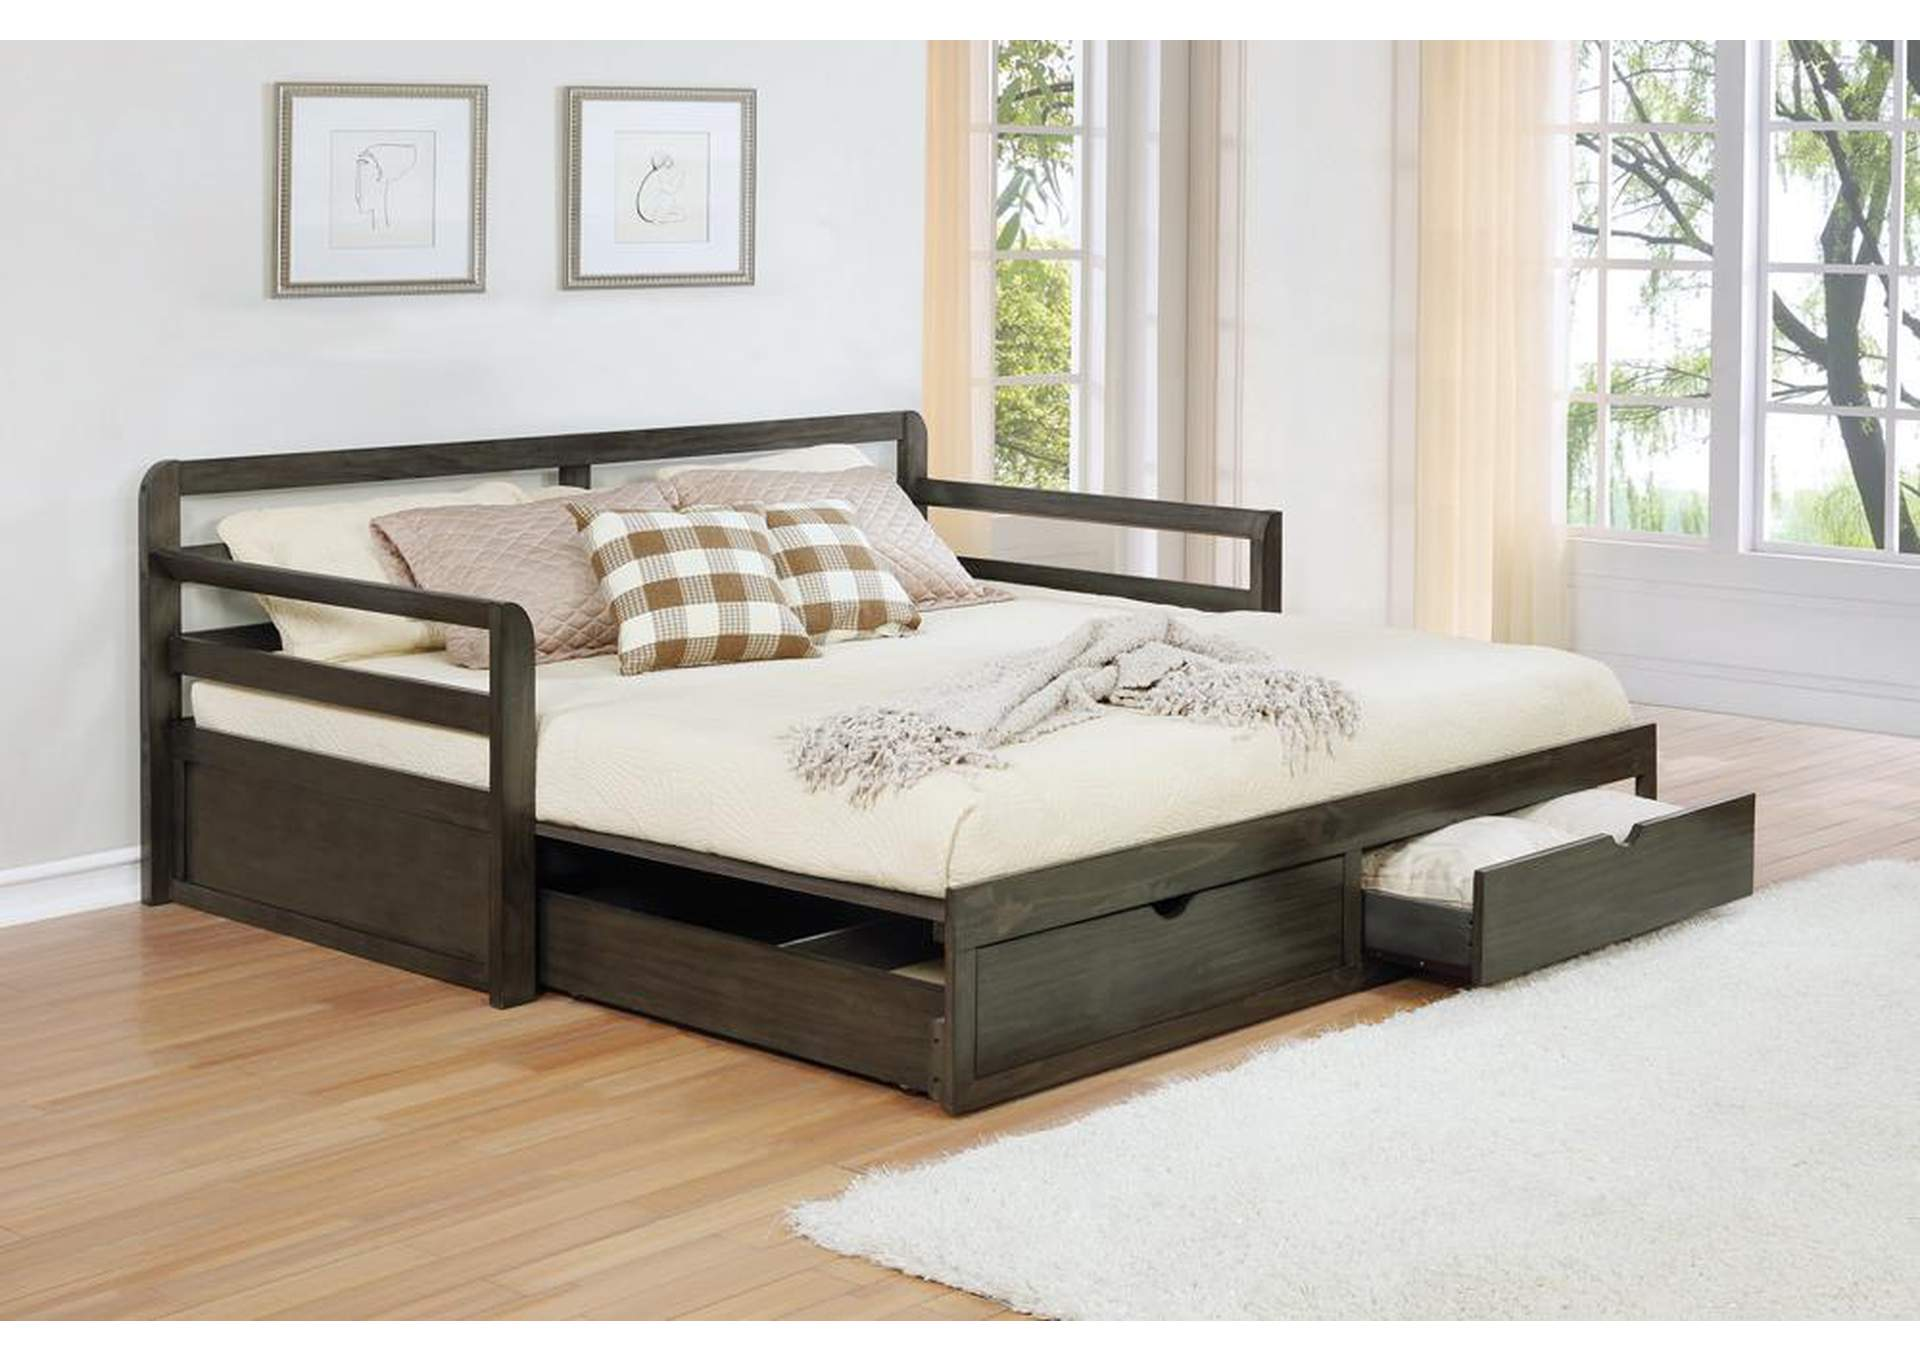 Westar Twin Xl Daybed W/ Trundle,Coaster Furniture